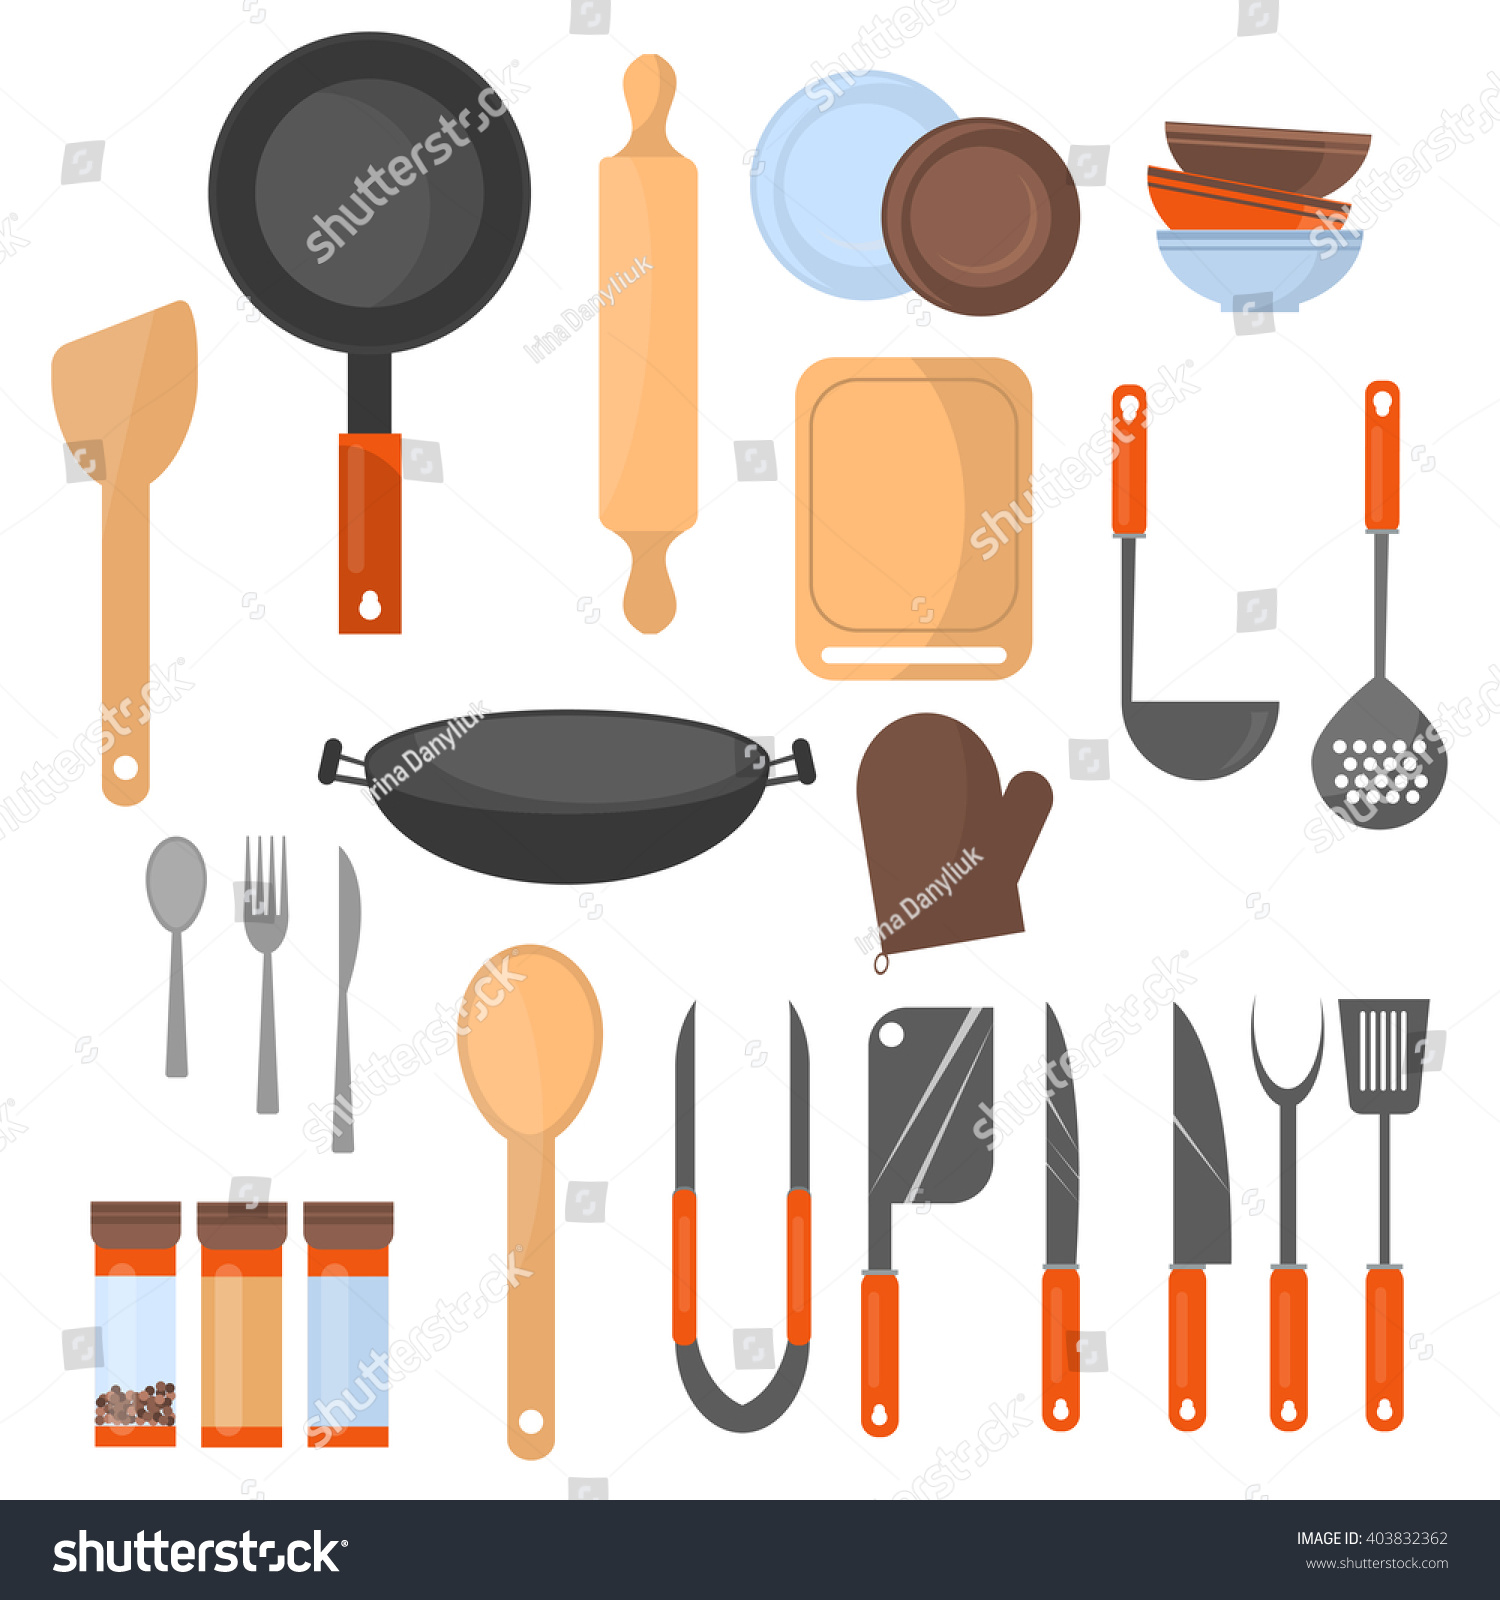 Different Kitchen Tools And Equipment ~ Set kitchen utensil collection cookware icons stock vector